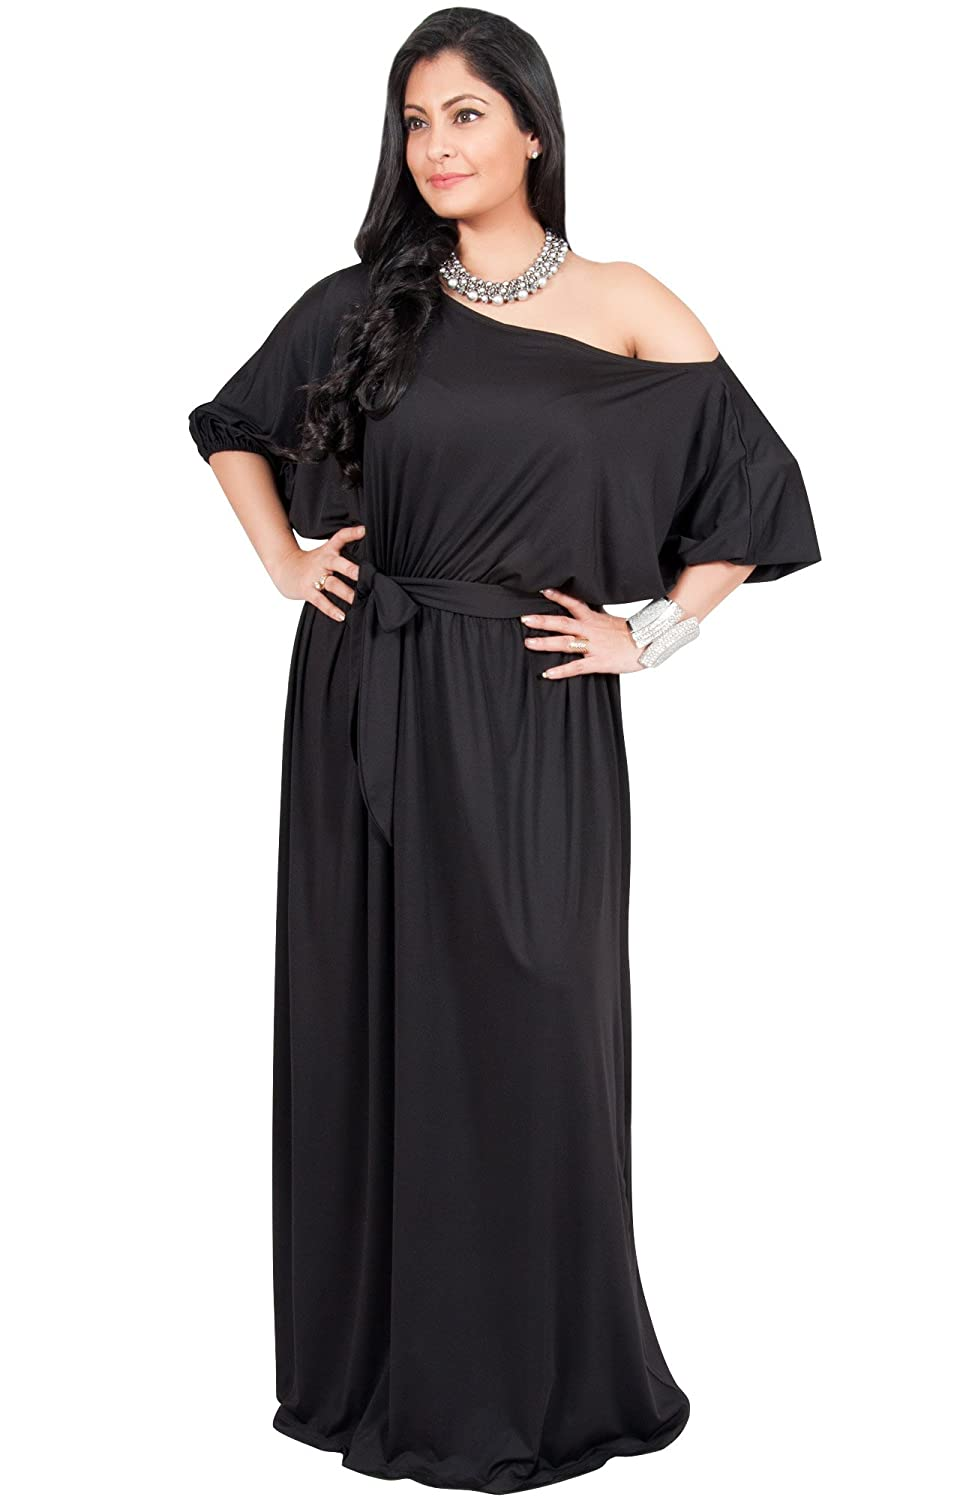 bf6b41c0014 GARMENT CARE - Hand or machine washable. Can be dry-cleaned if desired. PLUS  SIZE - This great plus size maxi dress is perfect for women with ...